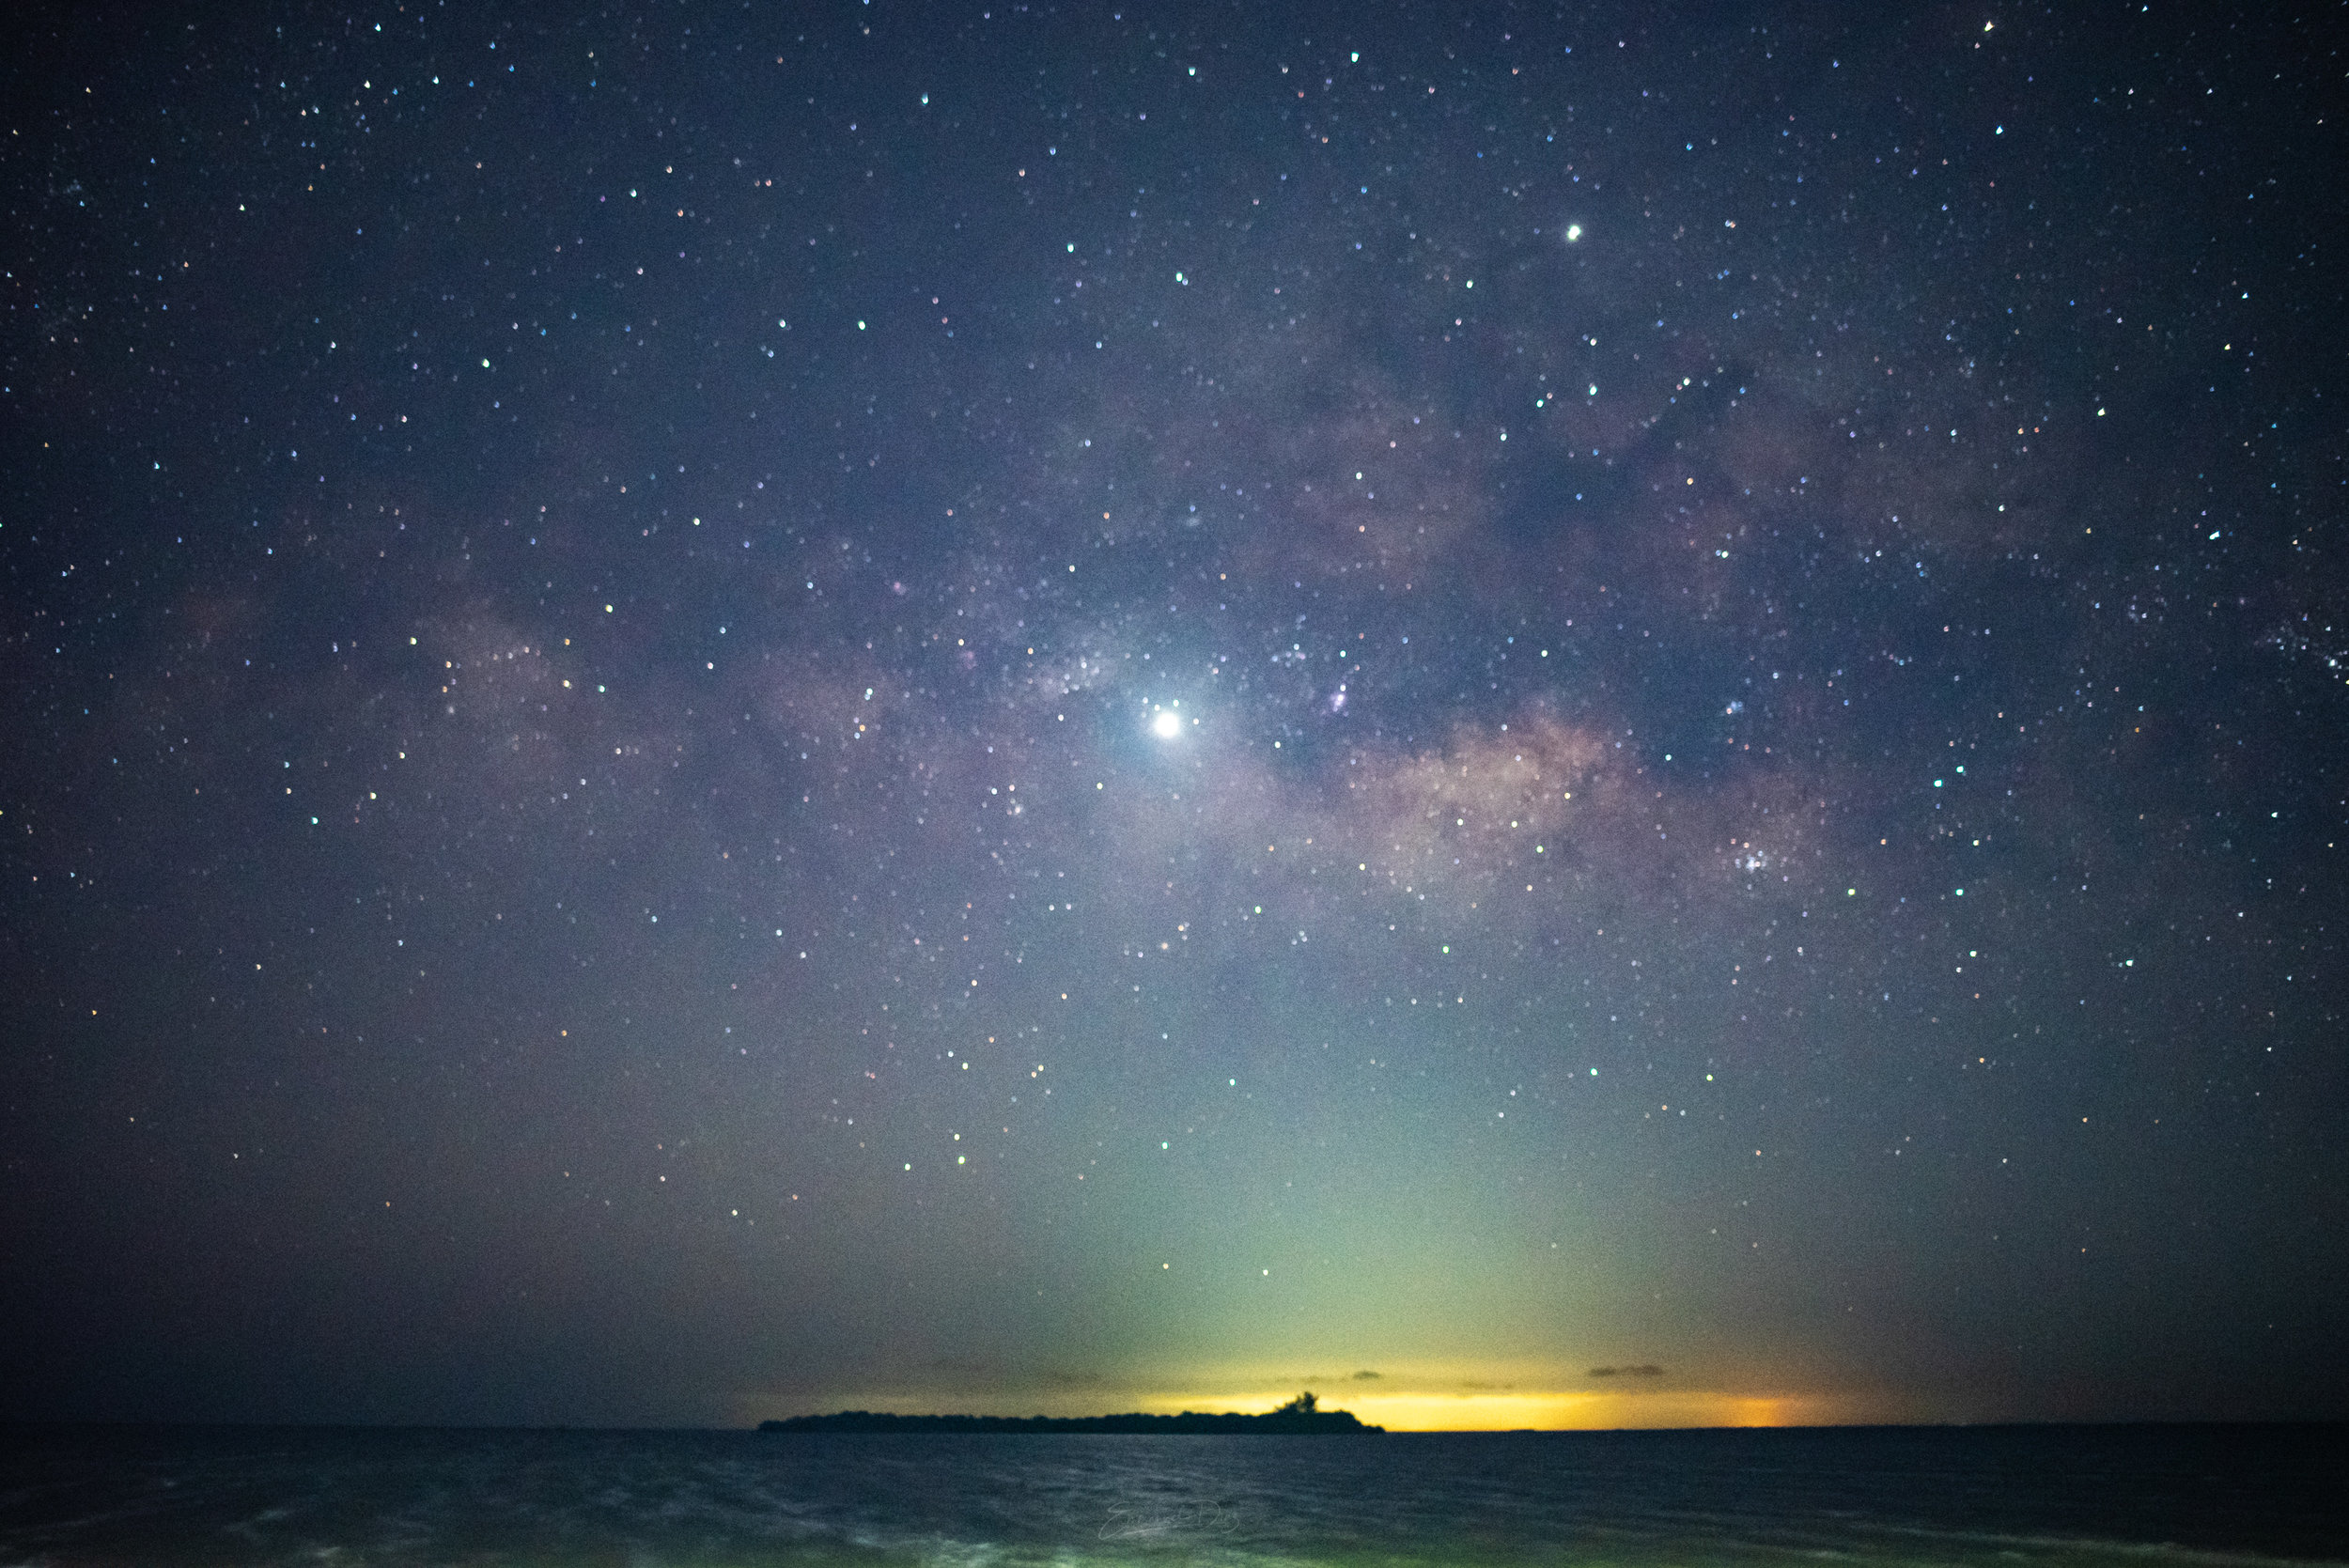 milky way view in Holbox island February 2019